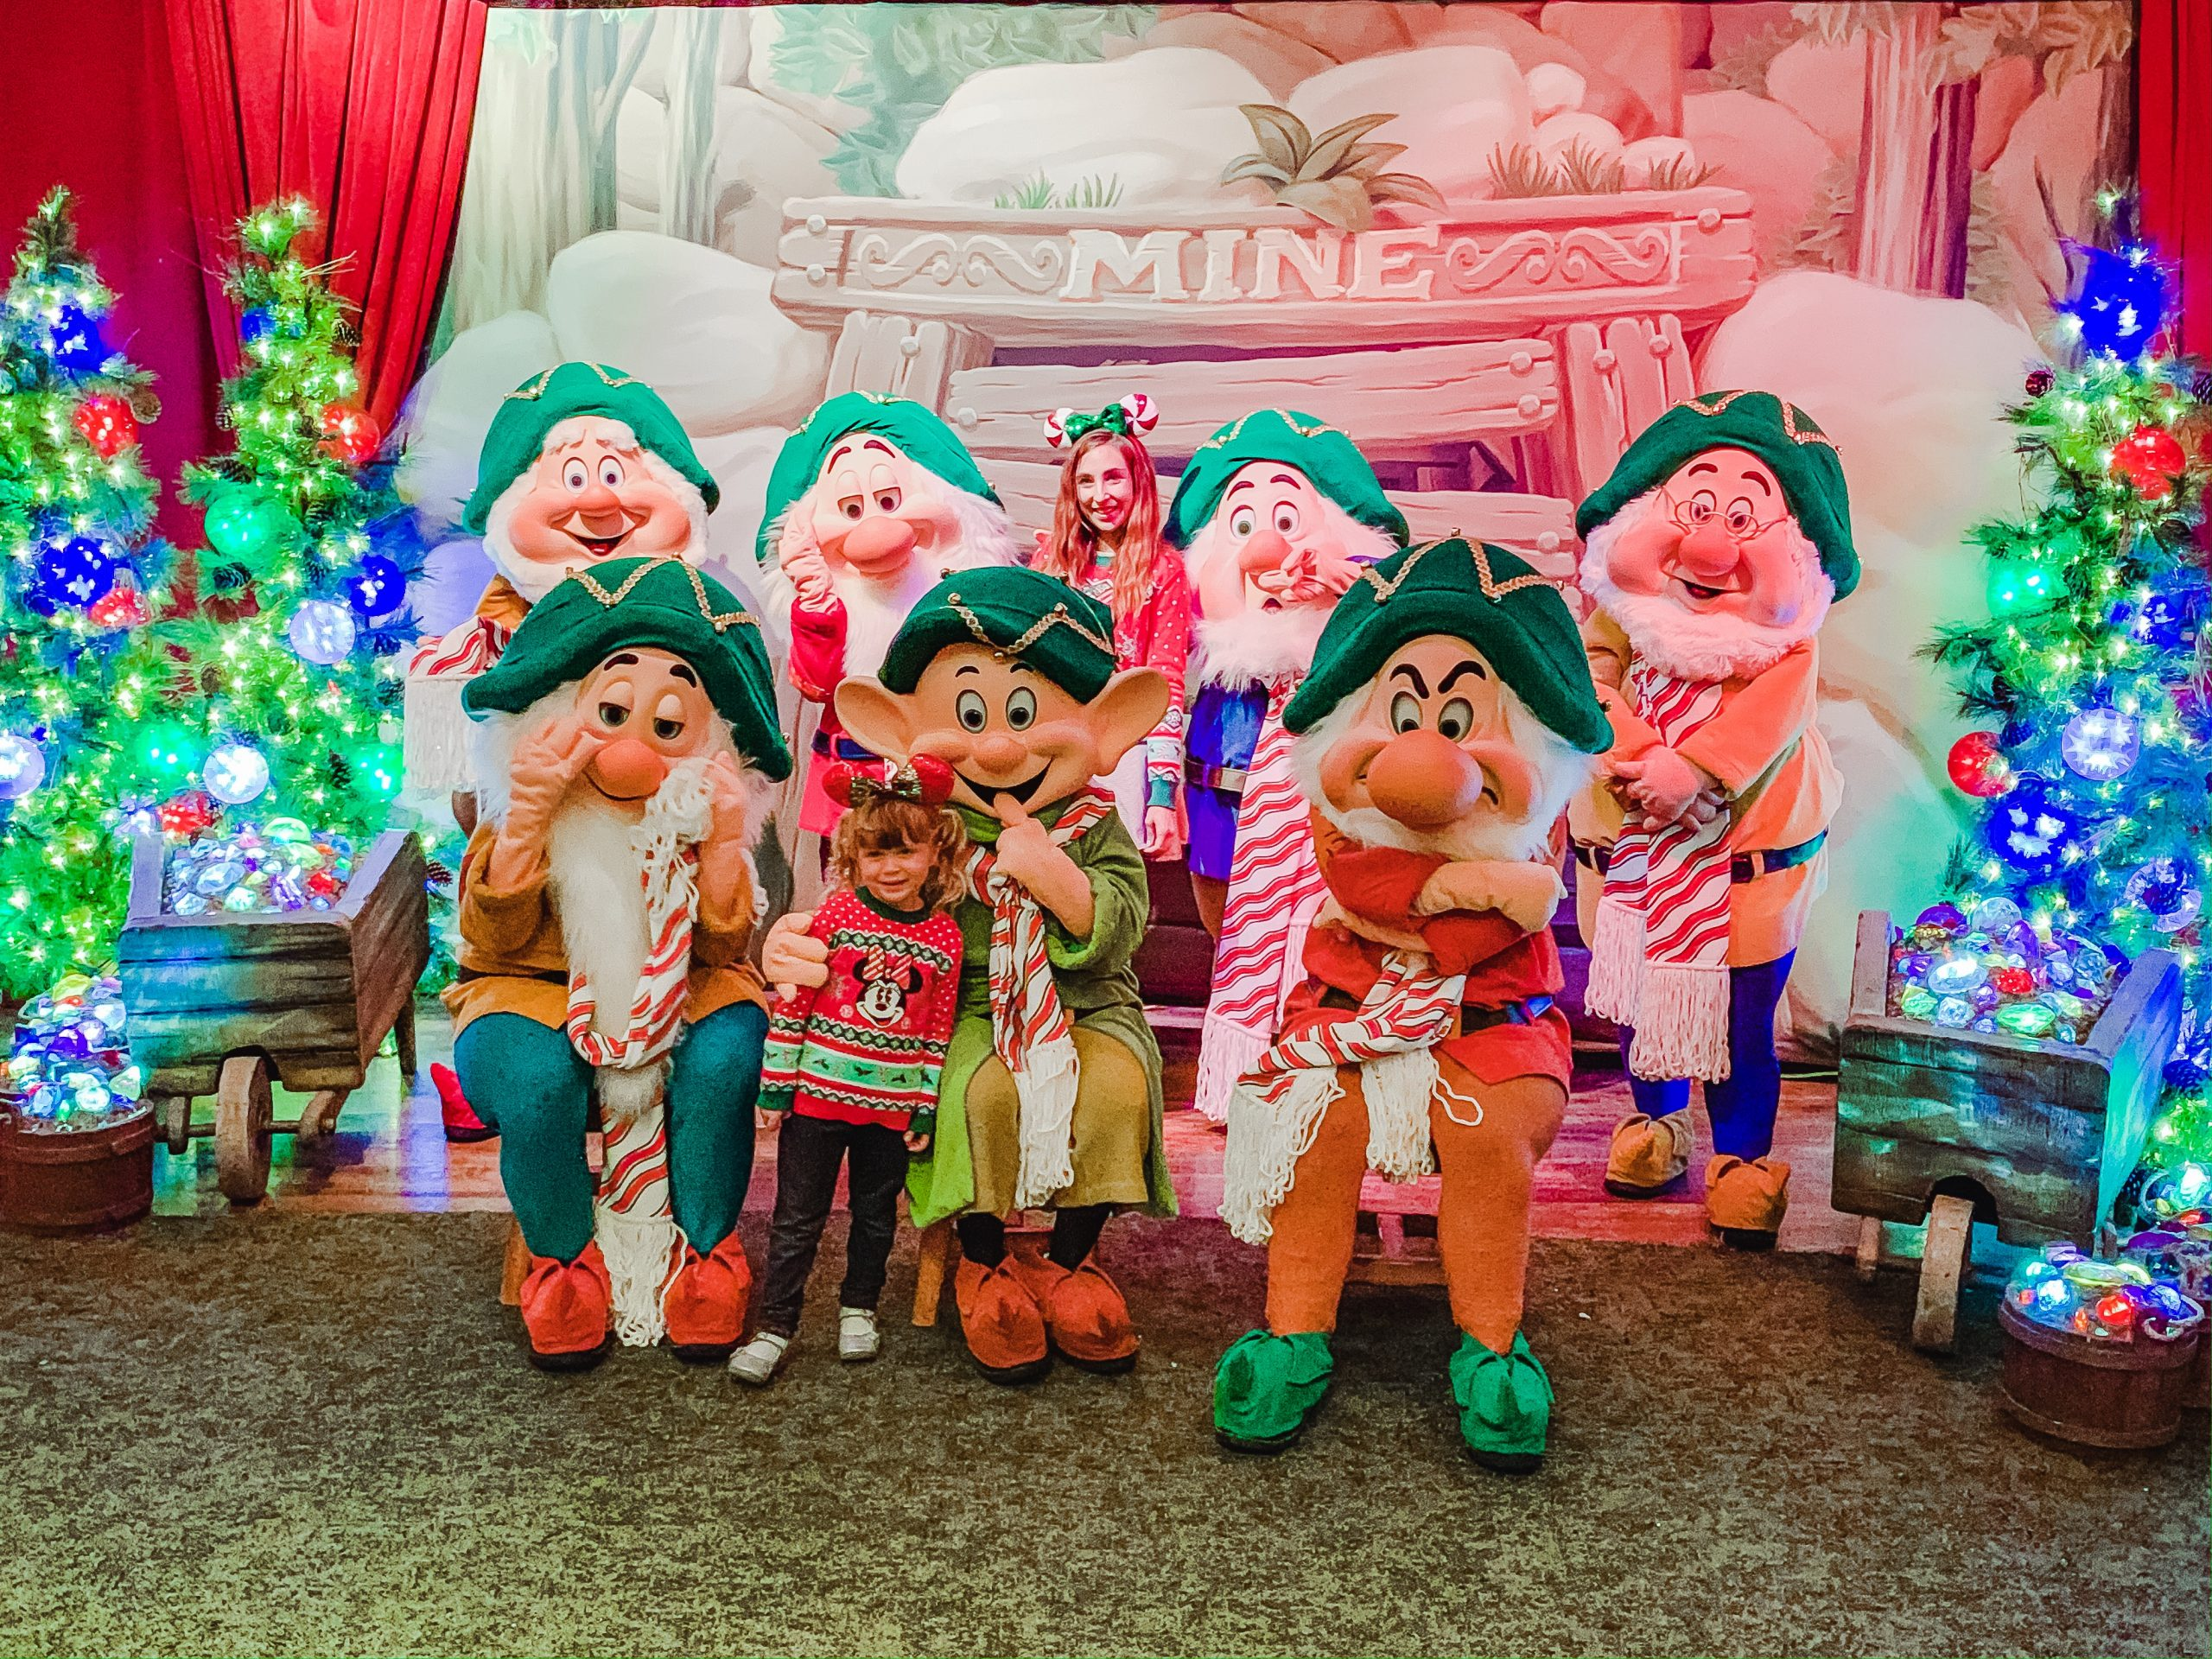 Mickey Svery Merry Christmas Party November 2020 Everything You Need to Know About Mickey's Very Merry Christmas Party